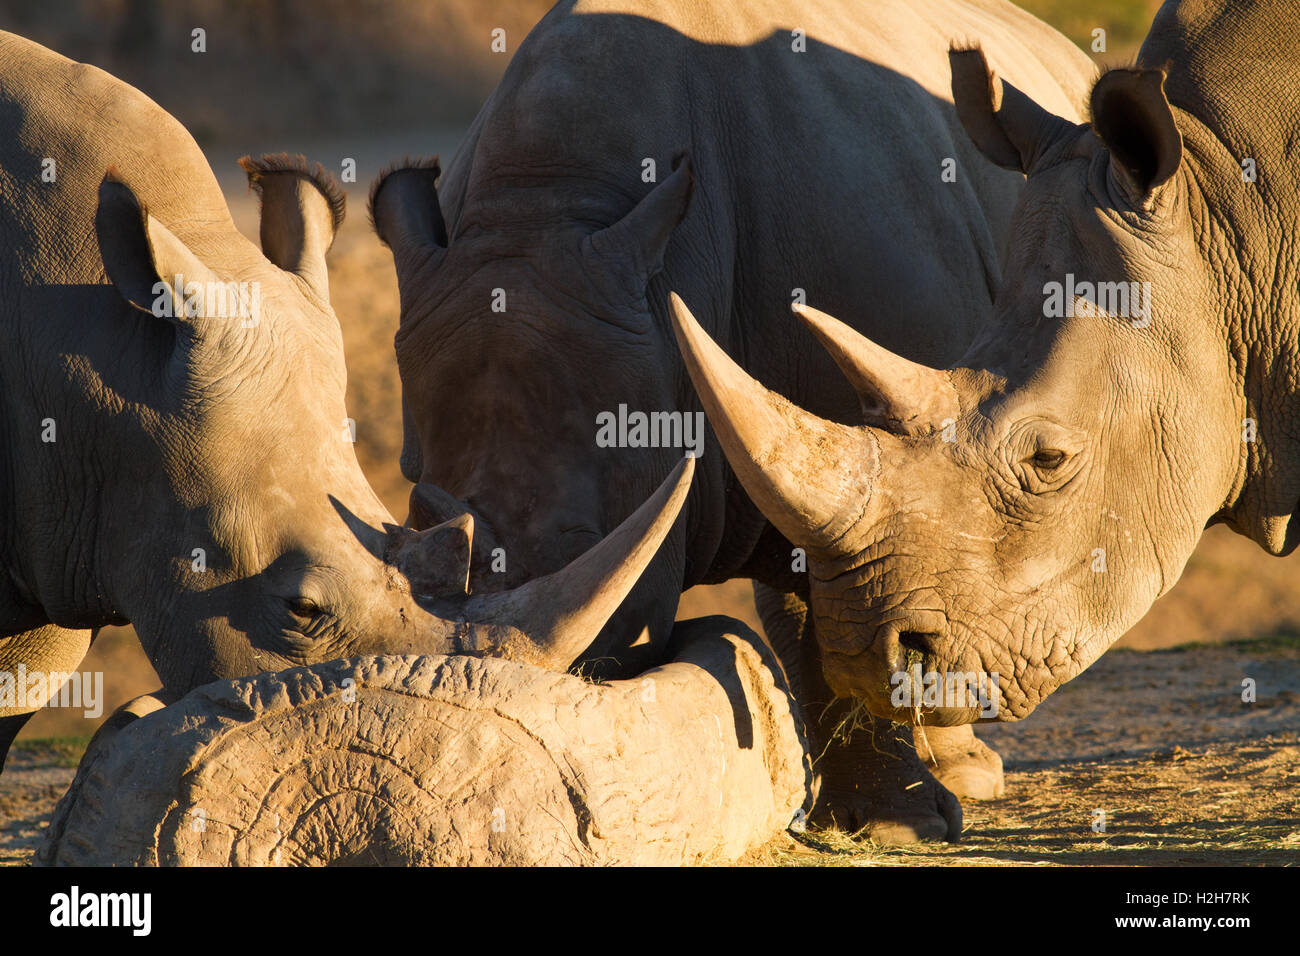 A close up of two rhino drinking water - Stock Image